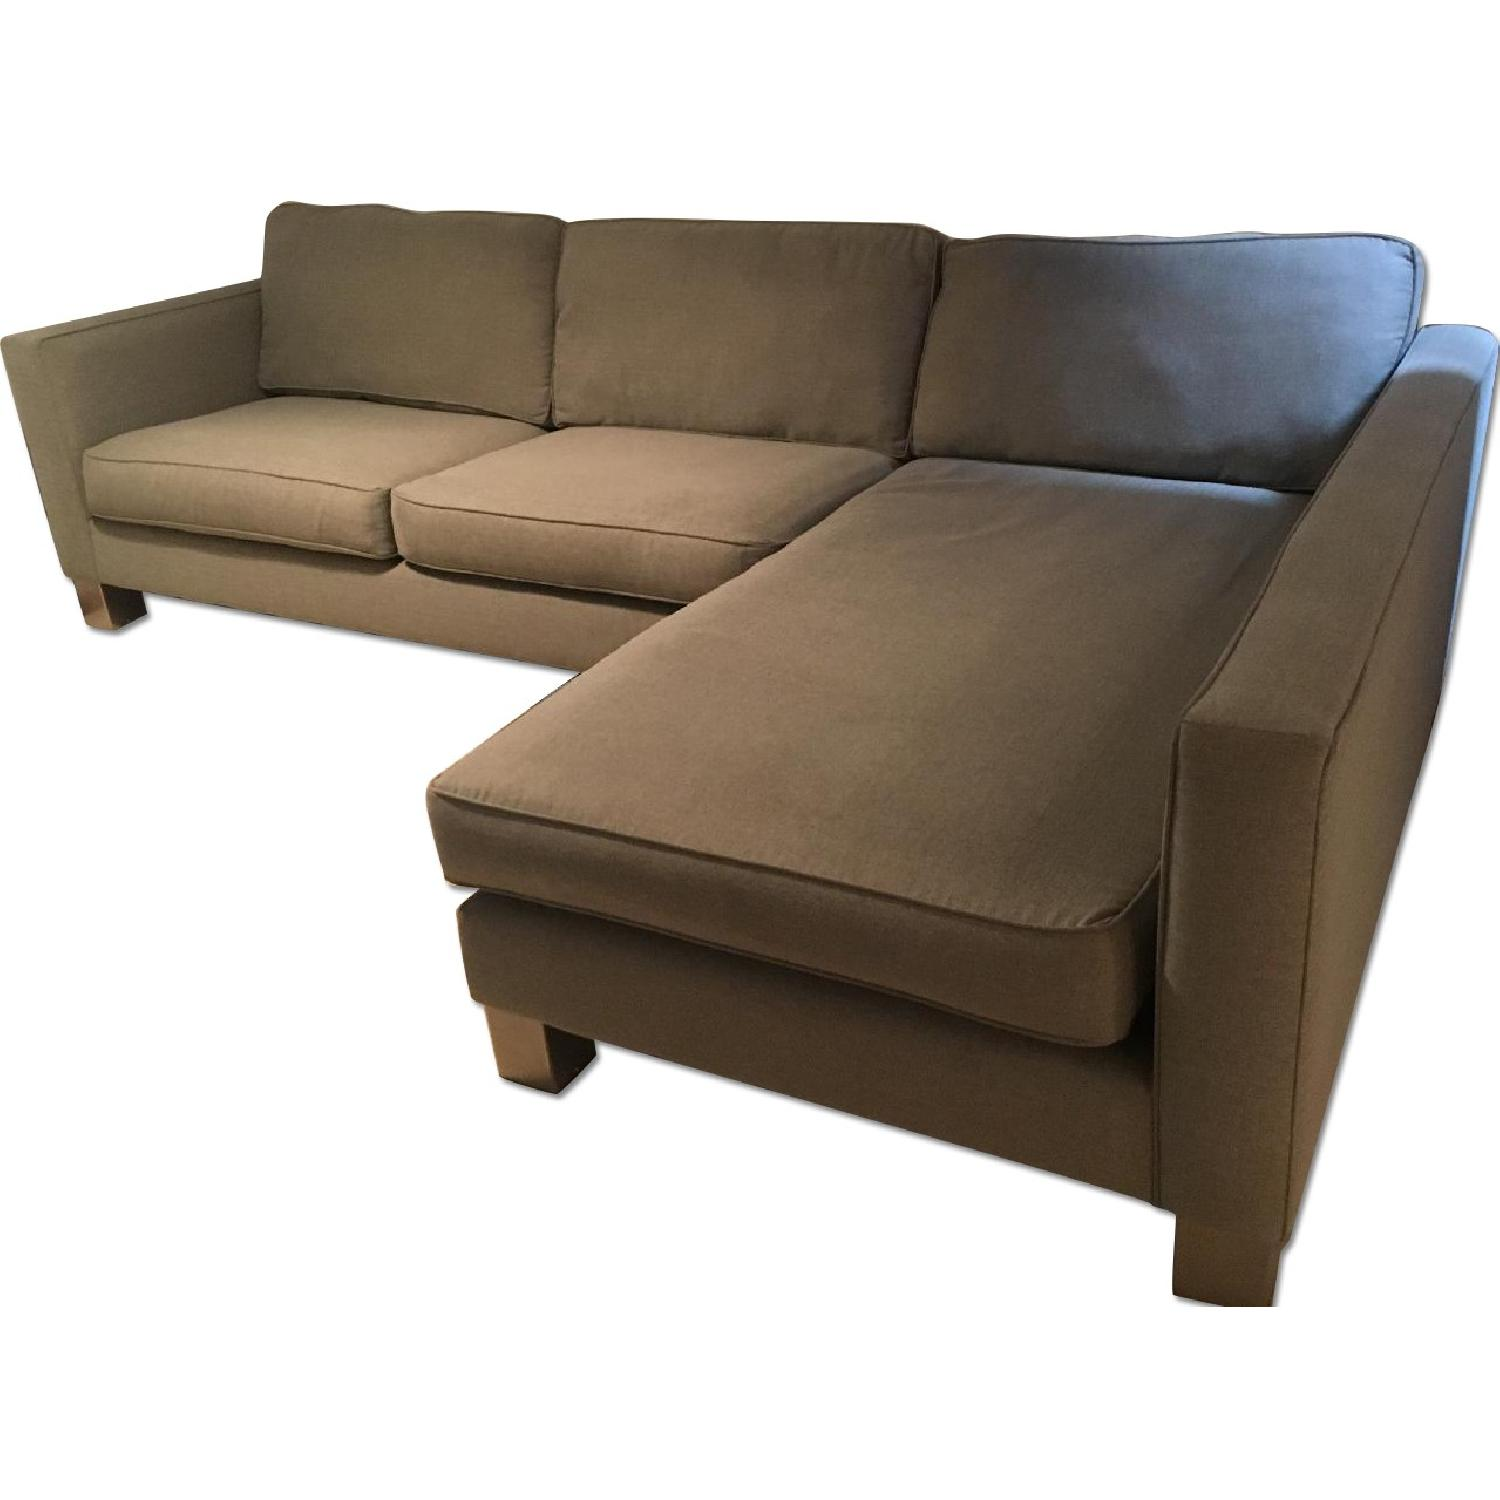 Bloomingdale's 2 Piece L-Shape Sectional w/ Chaise Lounge in Pewter/Gray - image-0